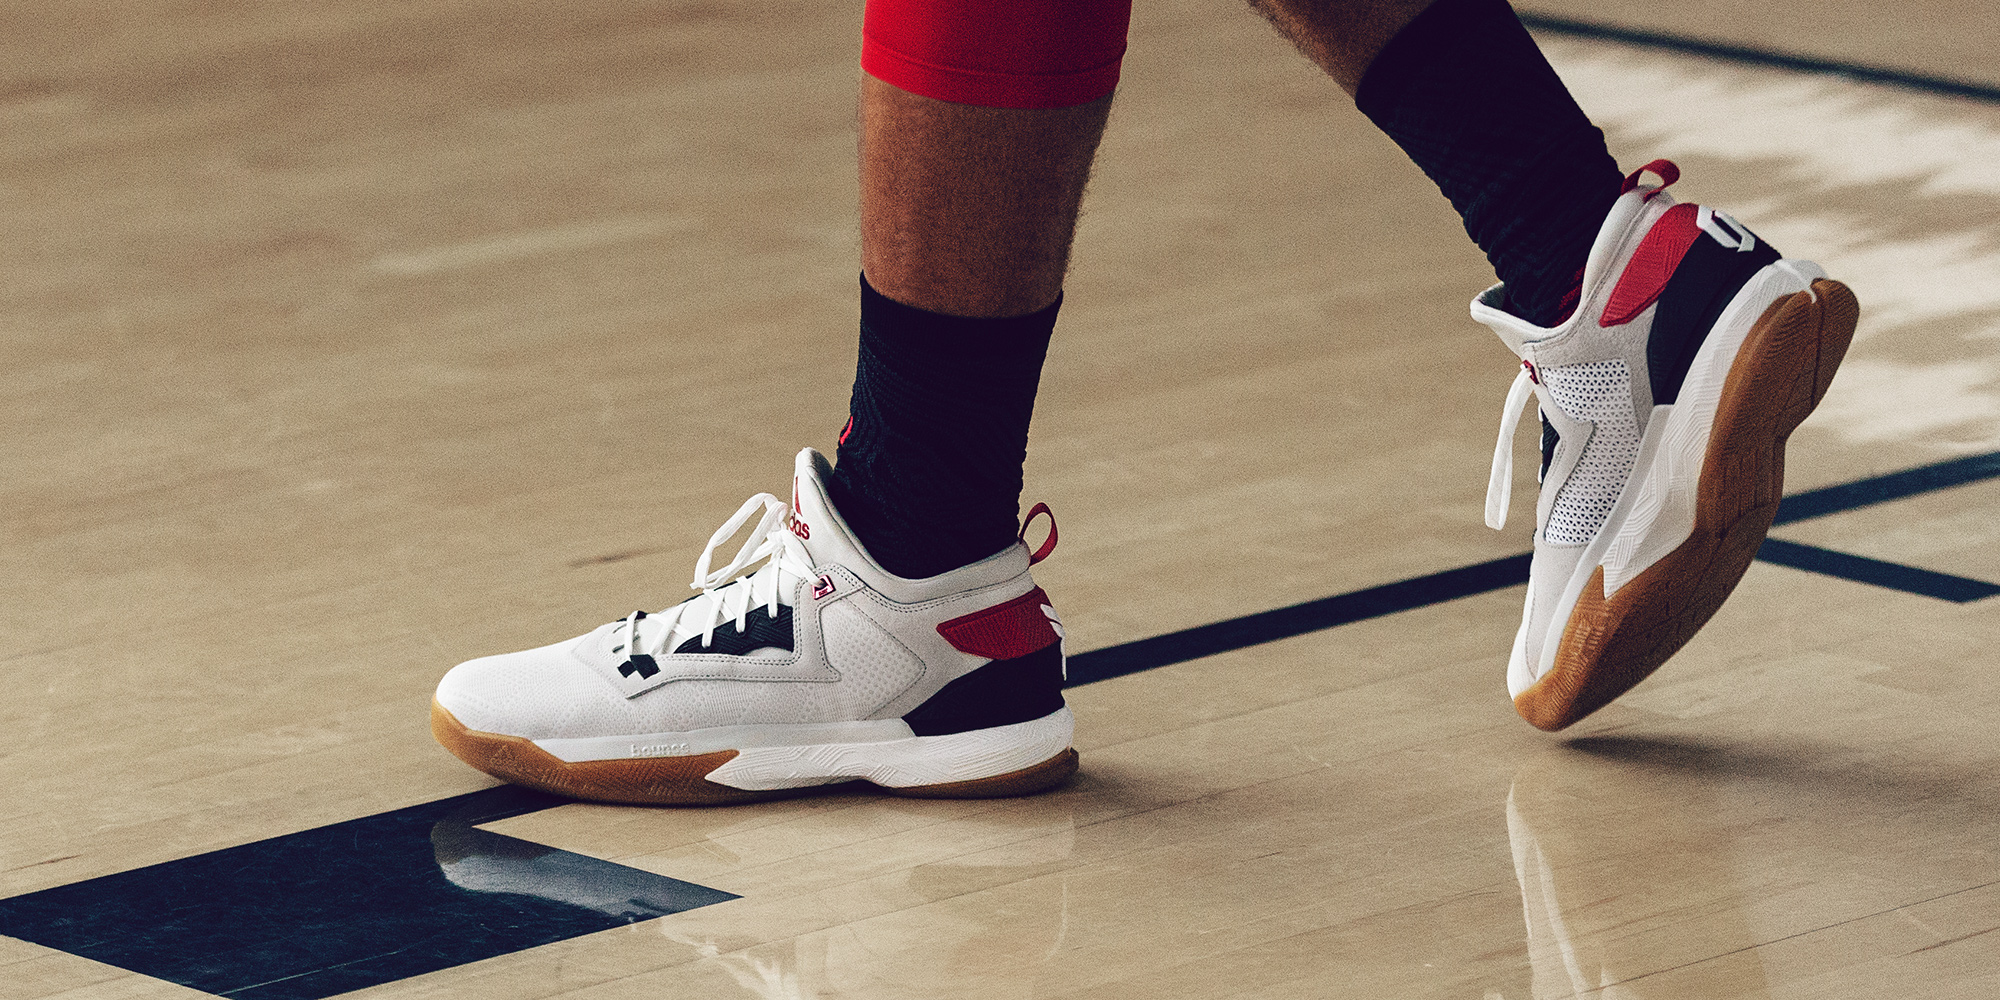 c1e524c7d12d9f The adidas D Lillard 2  Rip City  Colorway is Available Now ...